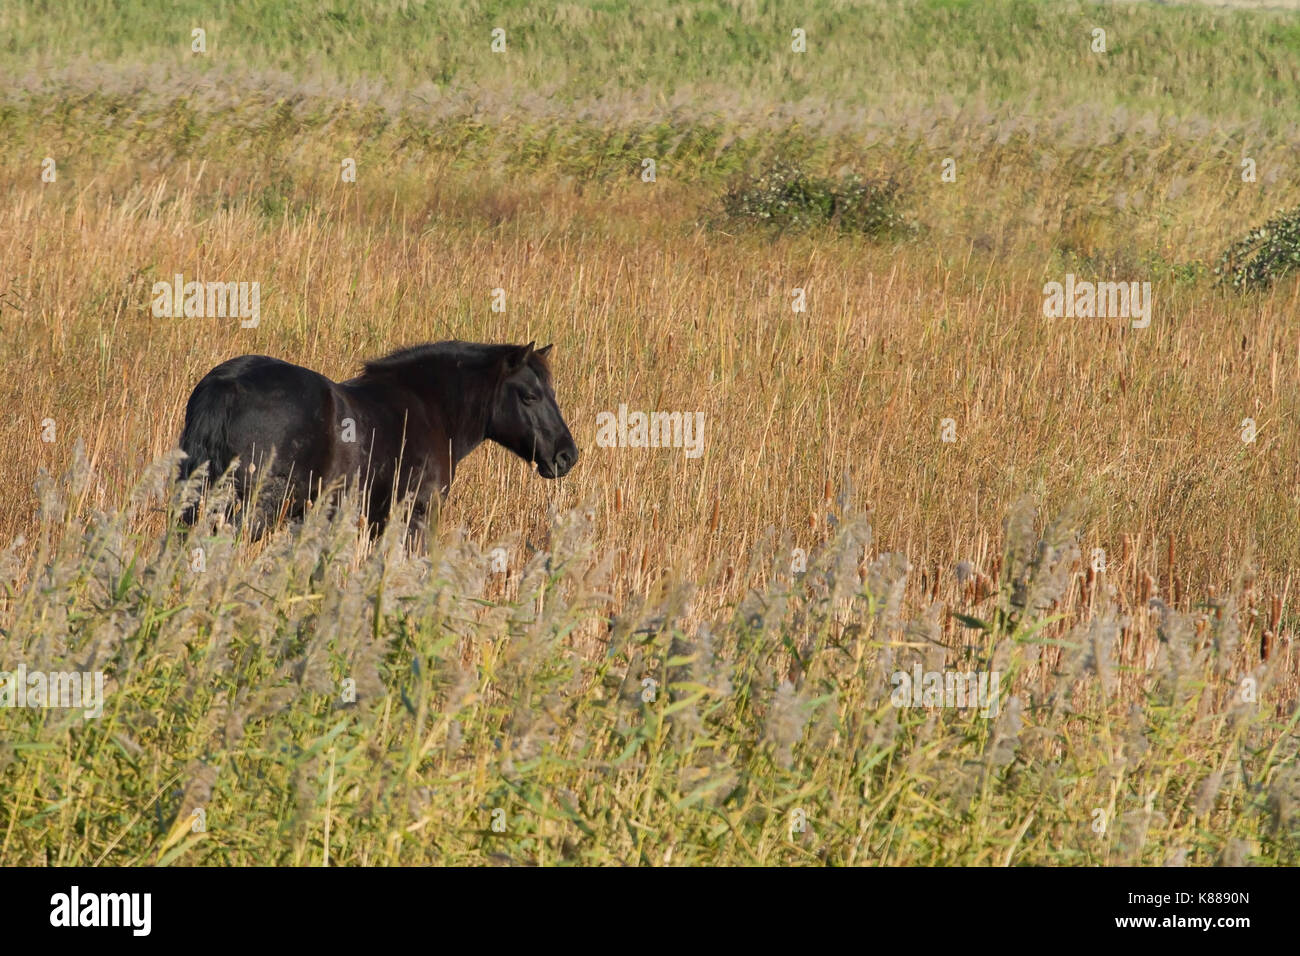 photo of an adult Konik horse in long grass - Stock Image